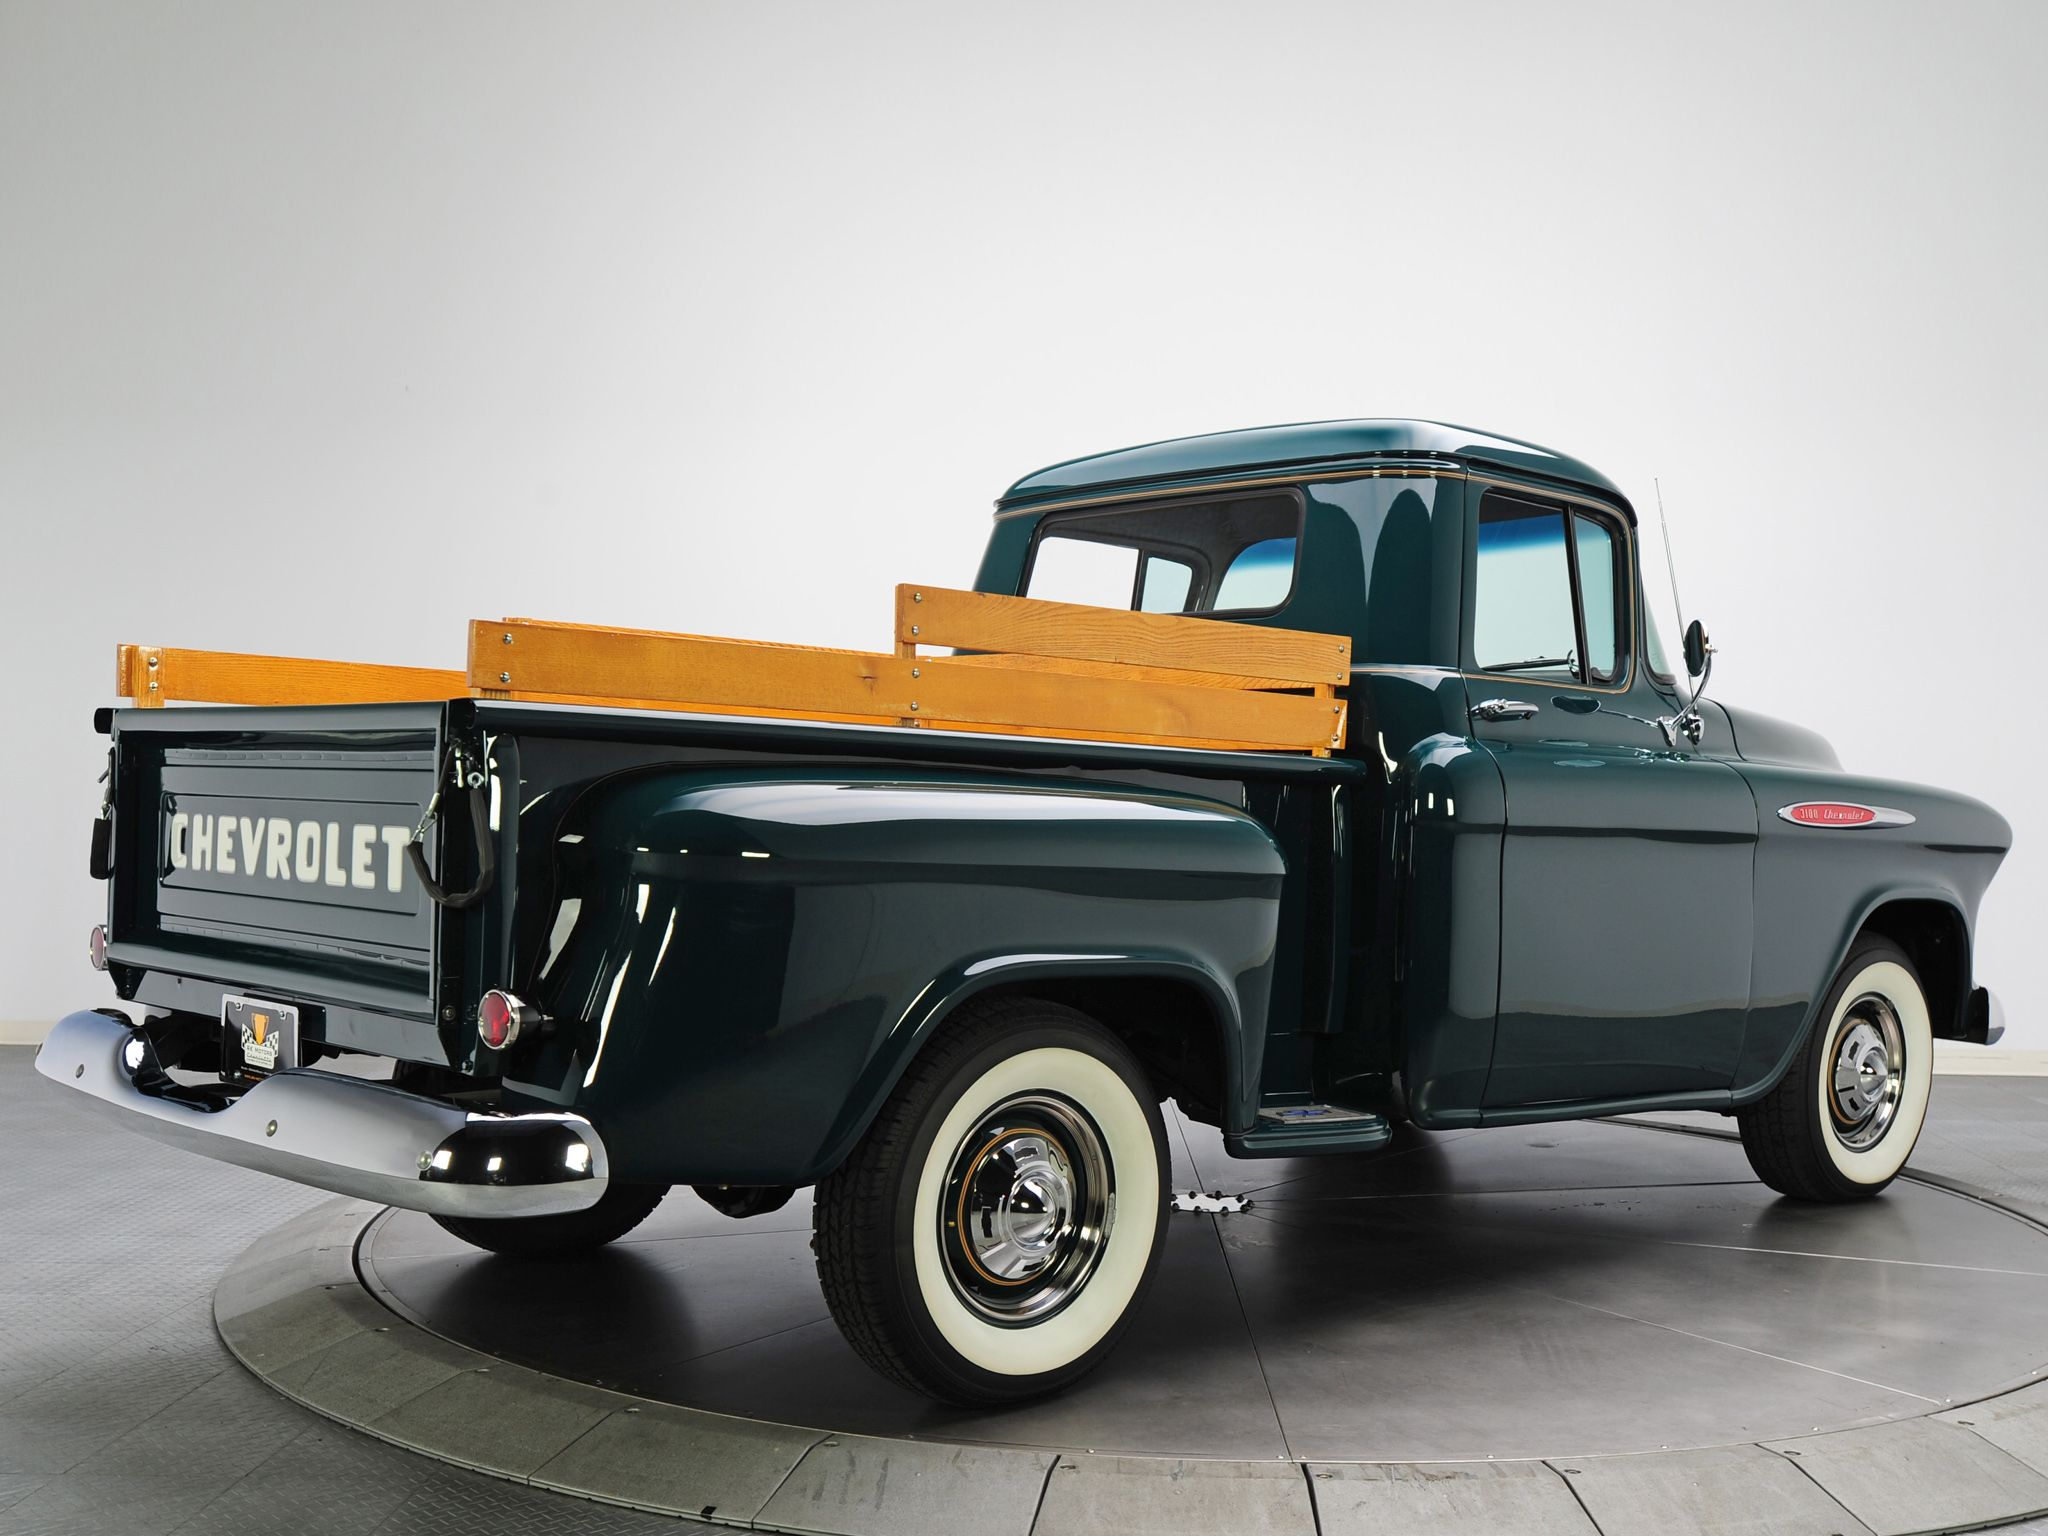 1955 chevy truck car clubs autos post - 1957 Chevy 4400 Truck Chevrolet 3100 Pickup 1957 Wallpapers